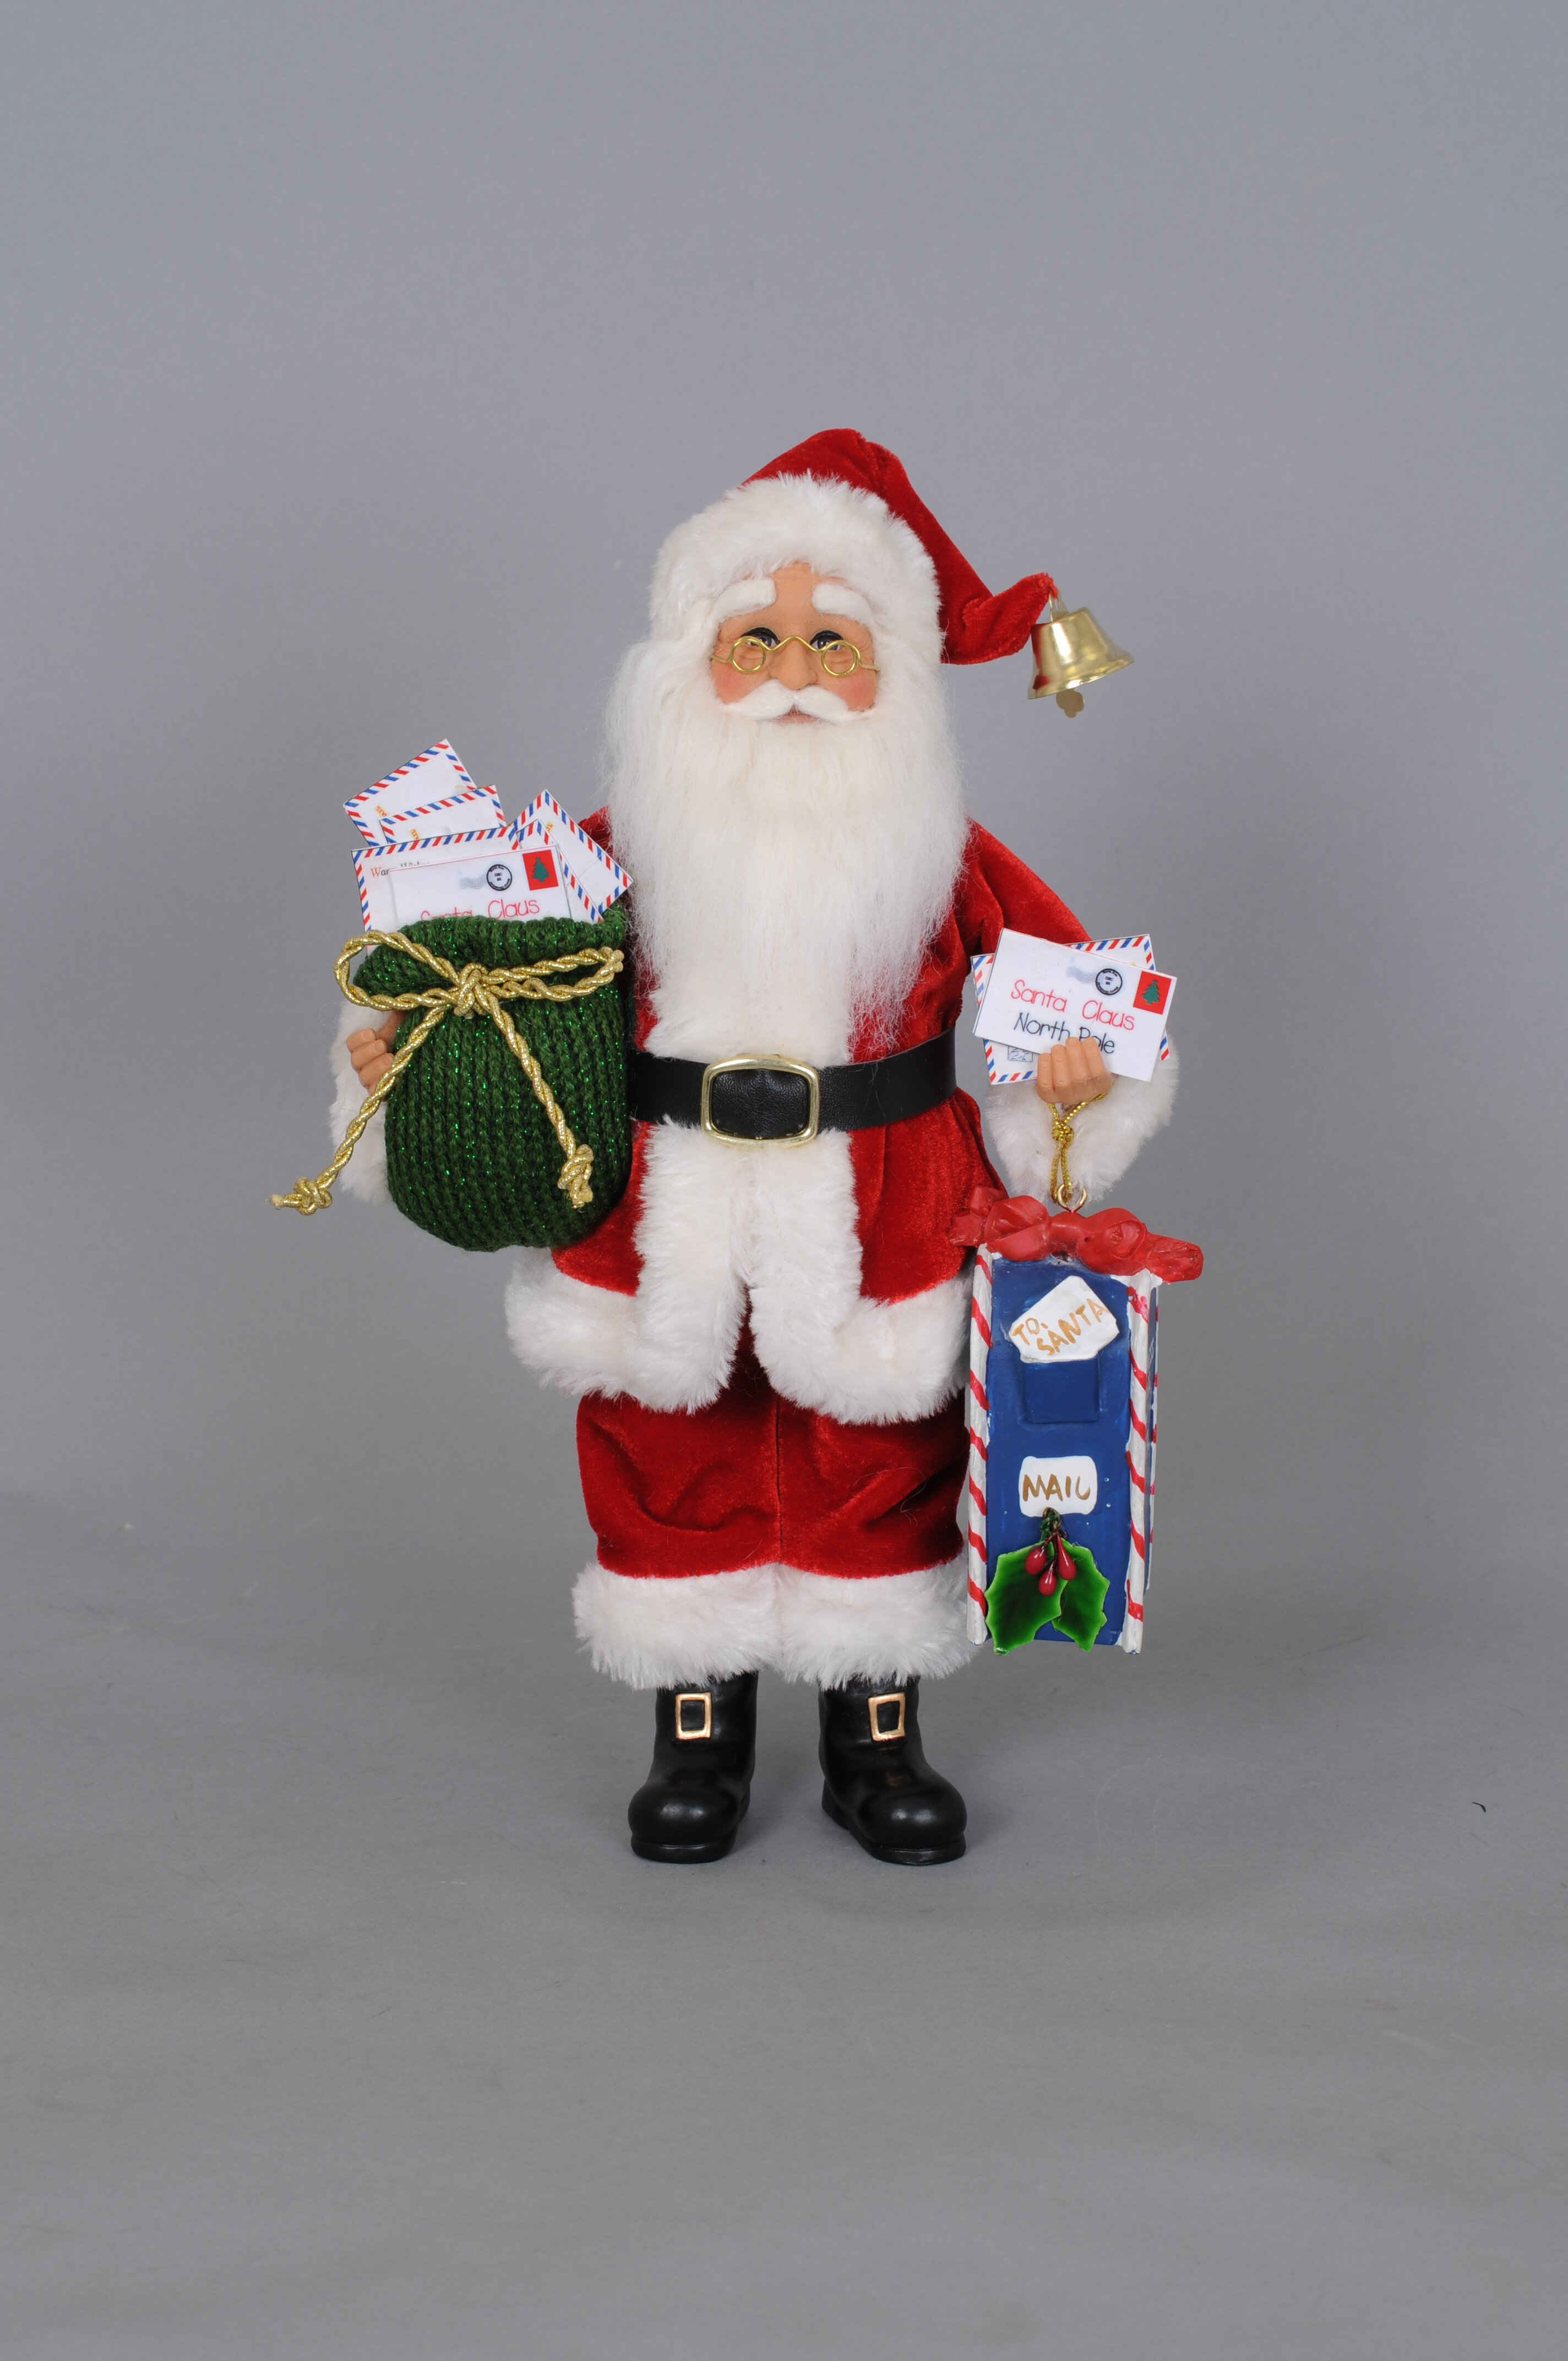 pin seidel decorative santa decor santas elf blanchard floridus michele pinterest